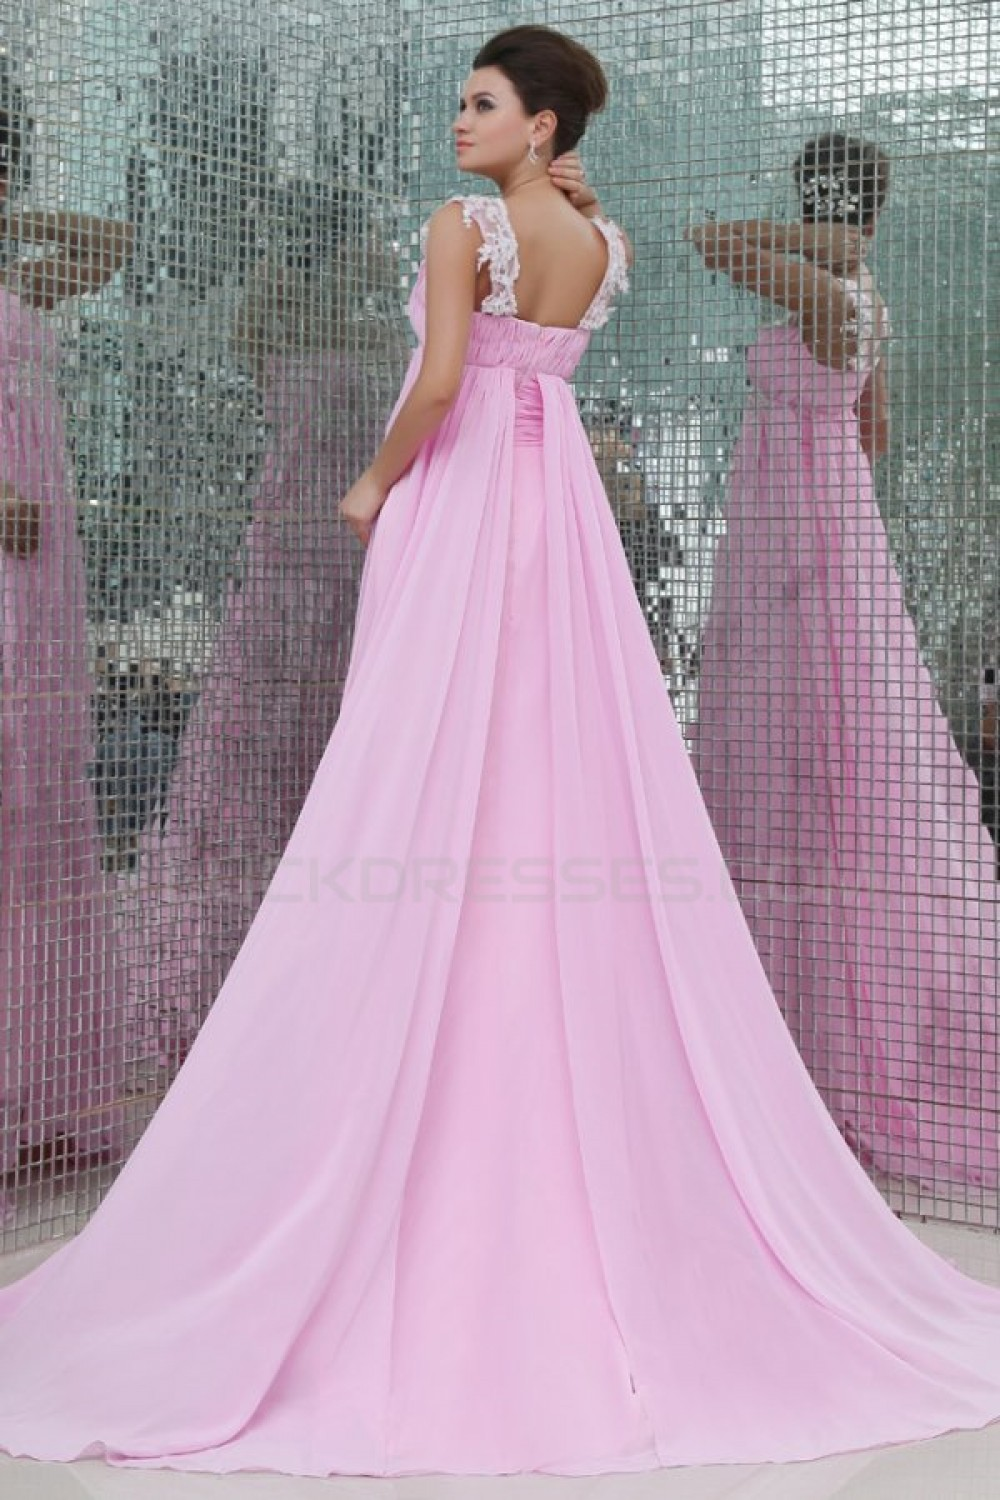 Pink chiffon prom evening formal party dressesmaternity evening long pink chiffon prom evening formal party dressesmaternity evening dresses ed010057 ombrellifo Images